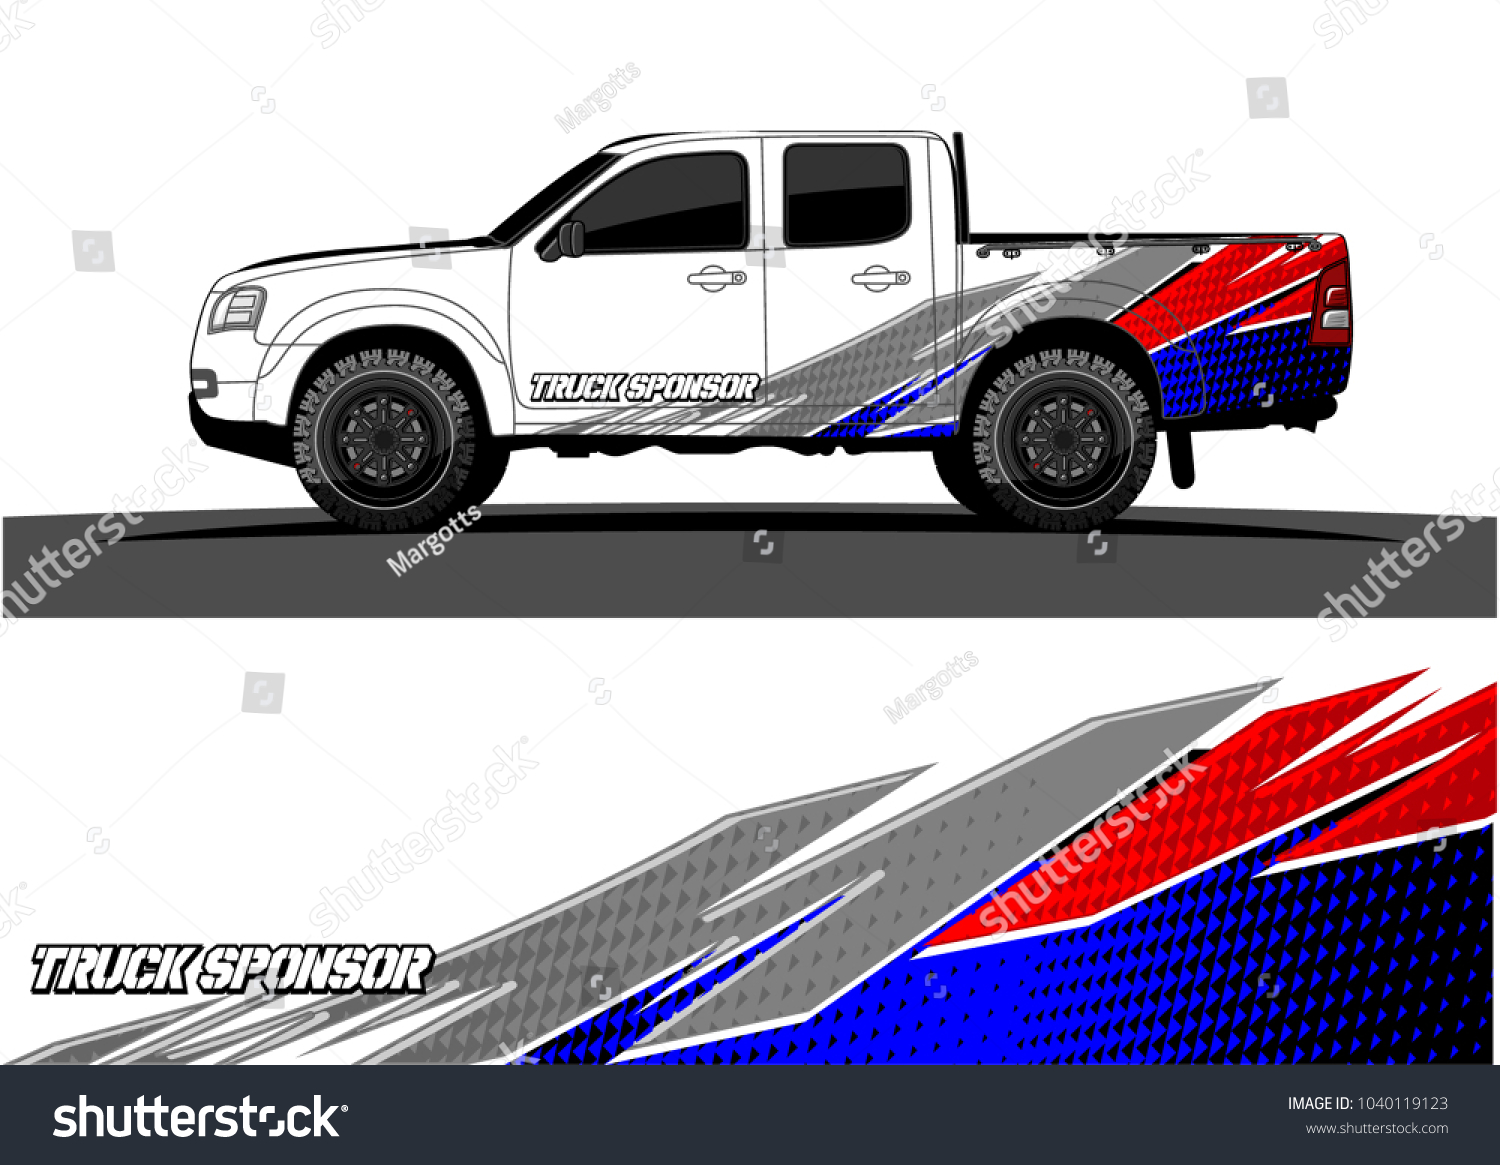 Truck and vehicle graphic vector racing background for vinyl wrap and decal